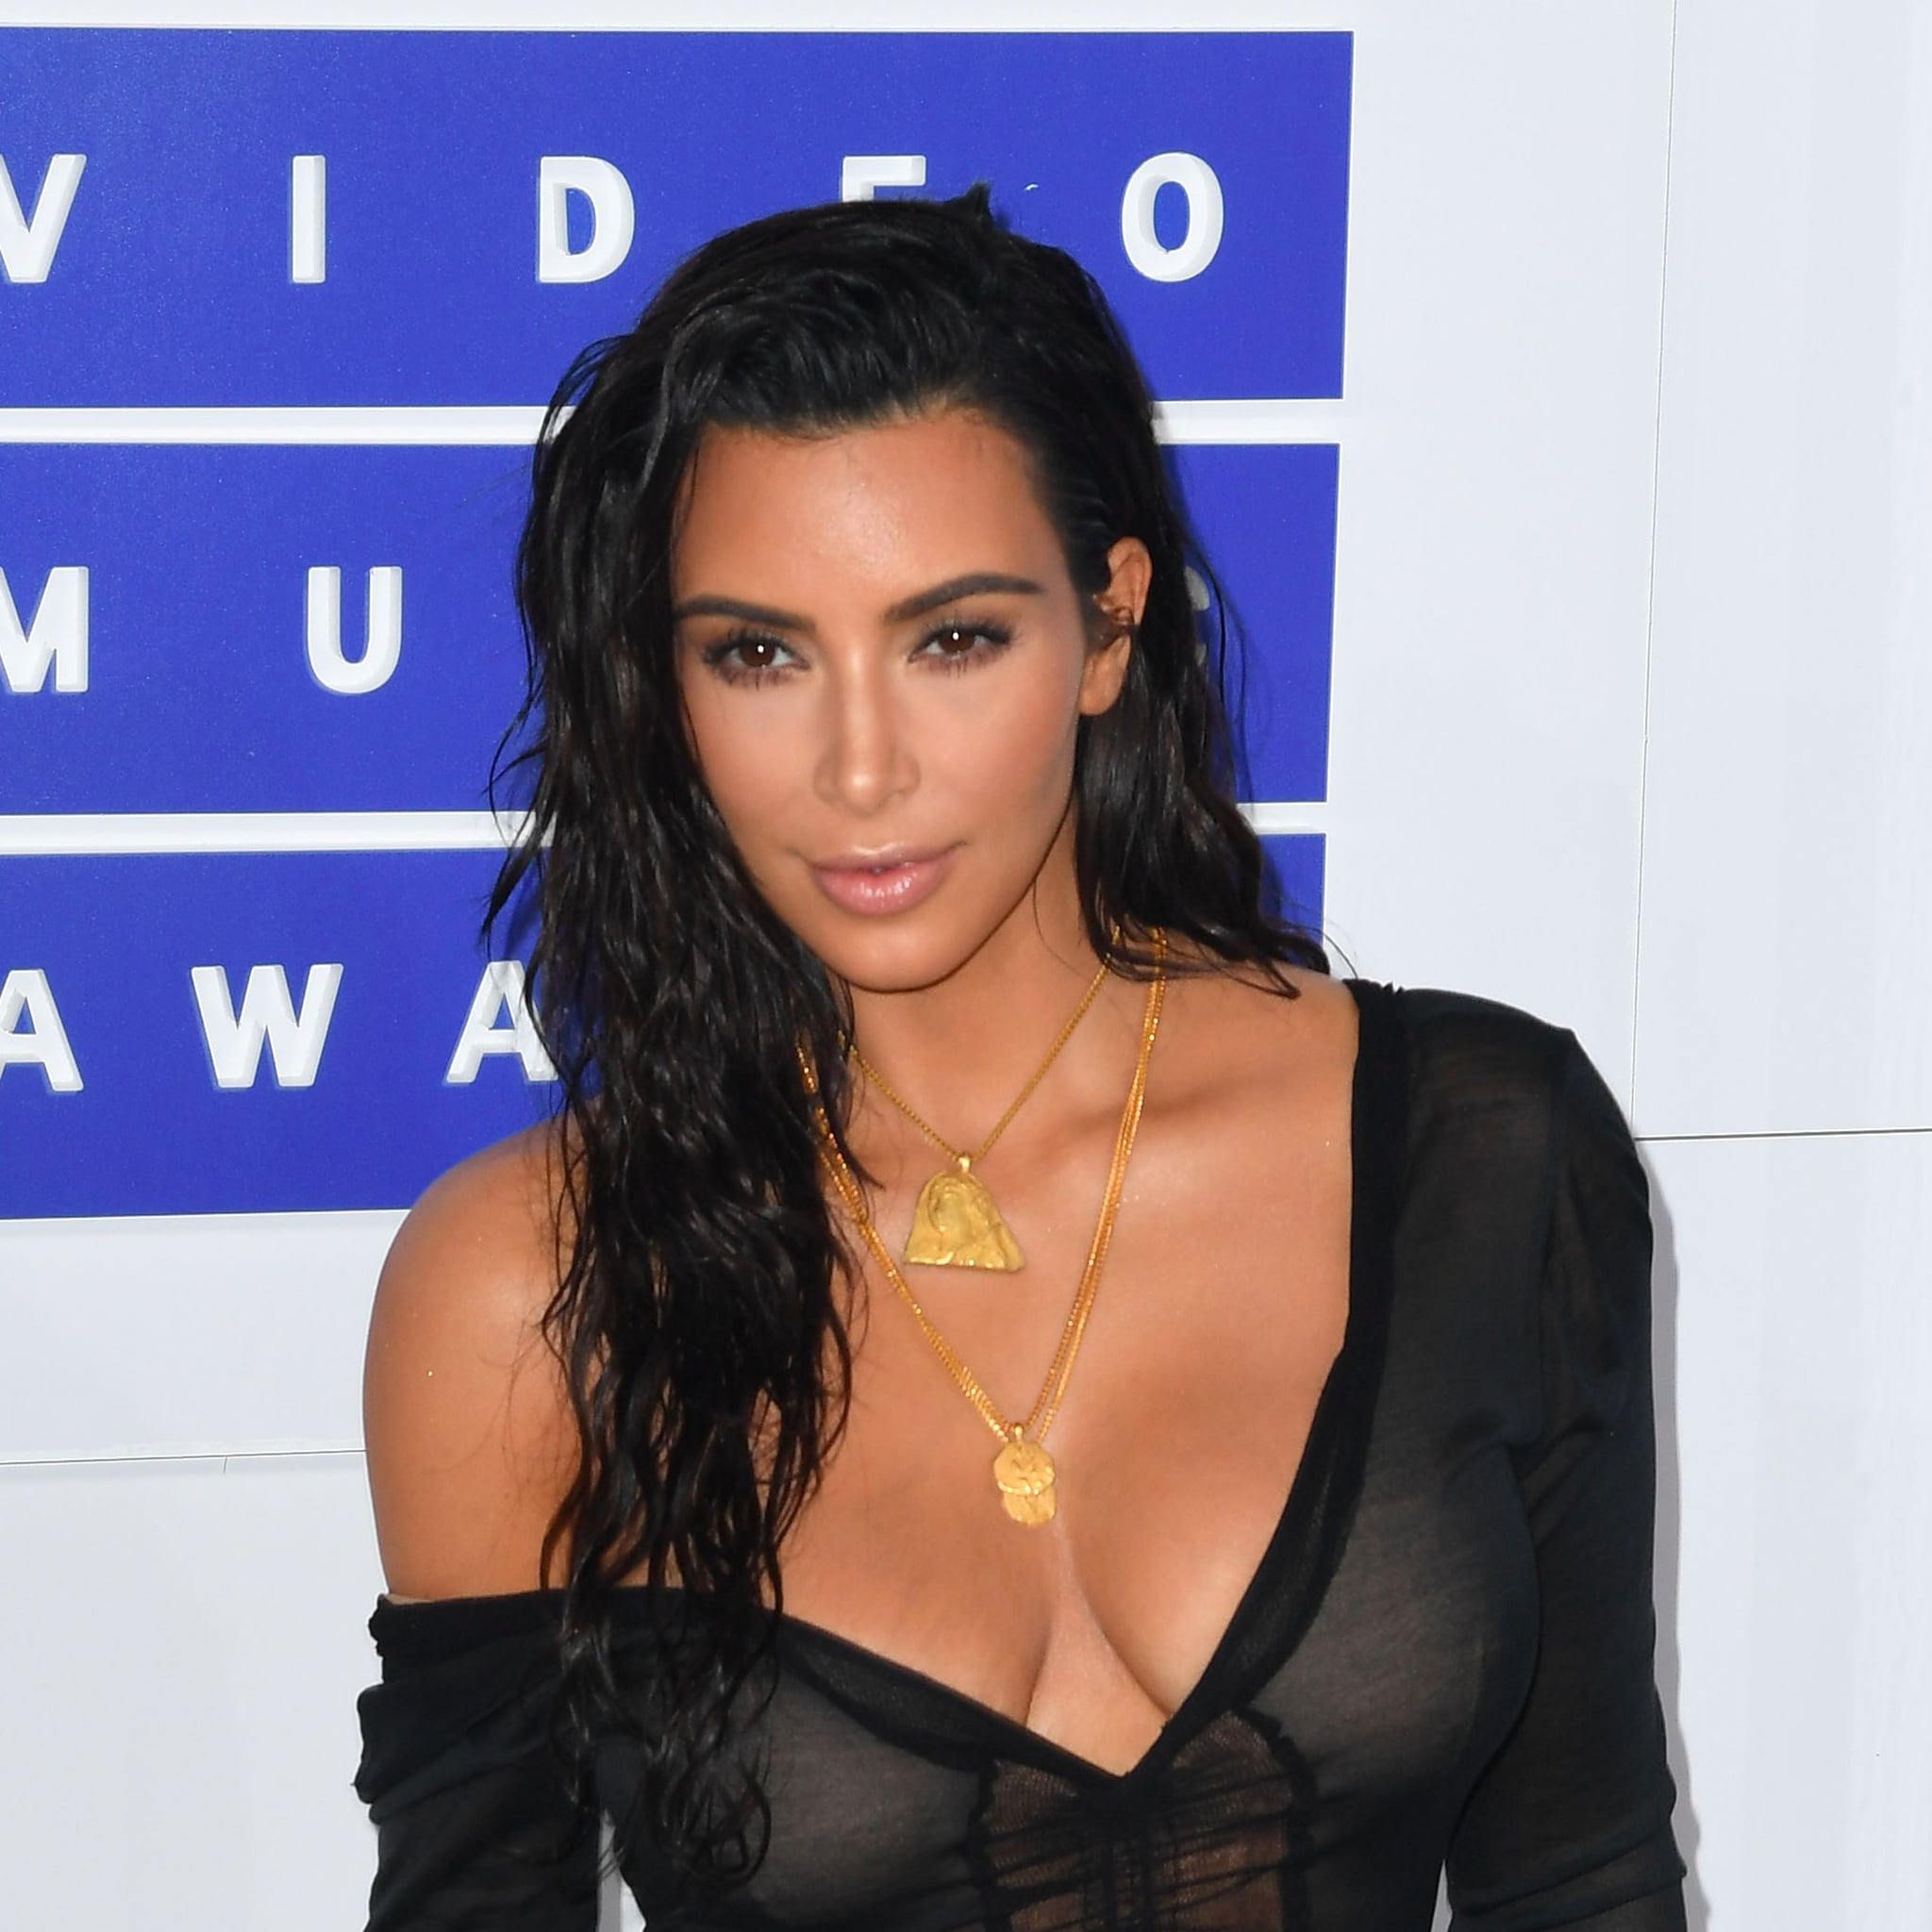 What Nude Lipstick Does Kim Kardashian Use? | POPSUGAR Beauty